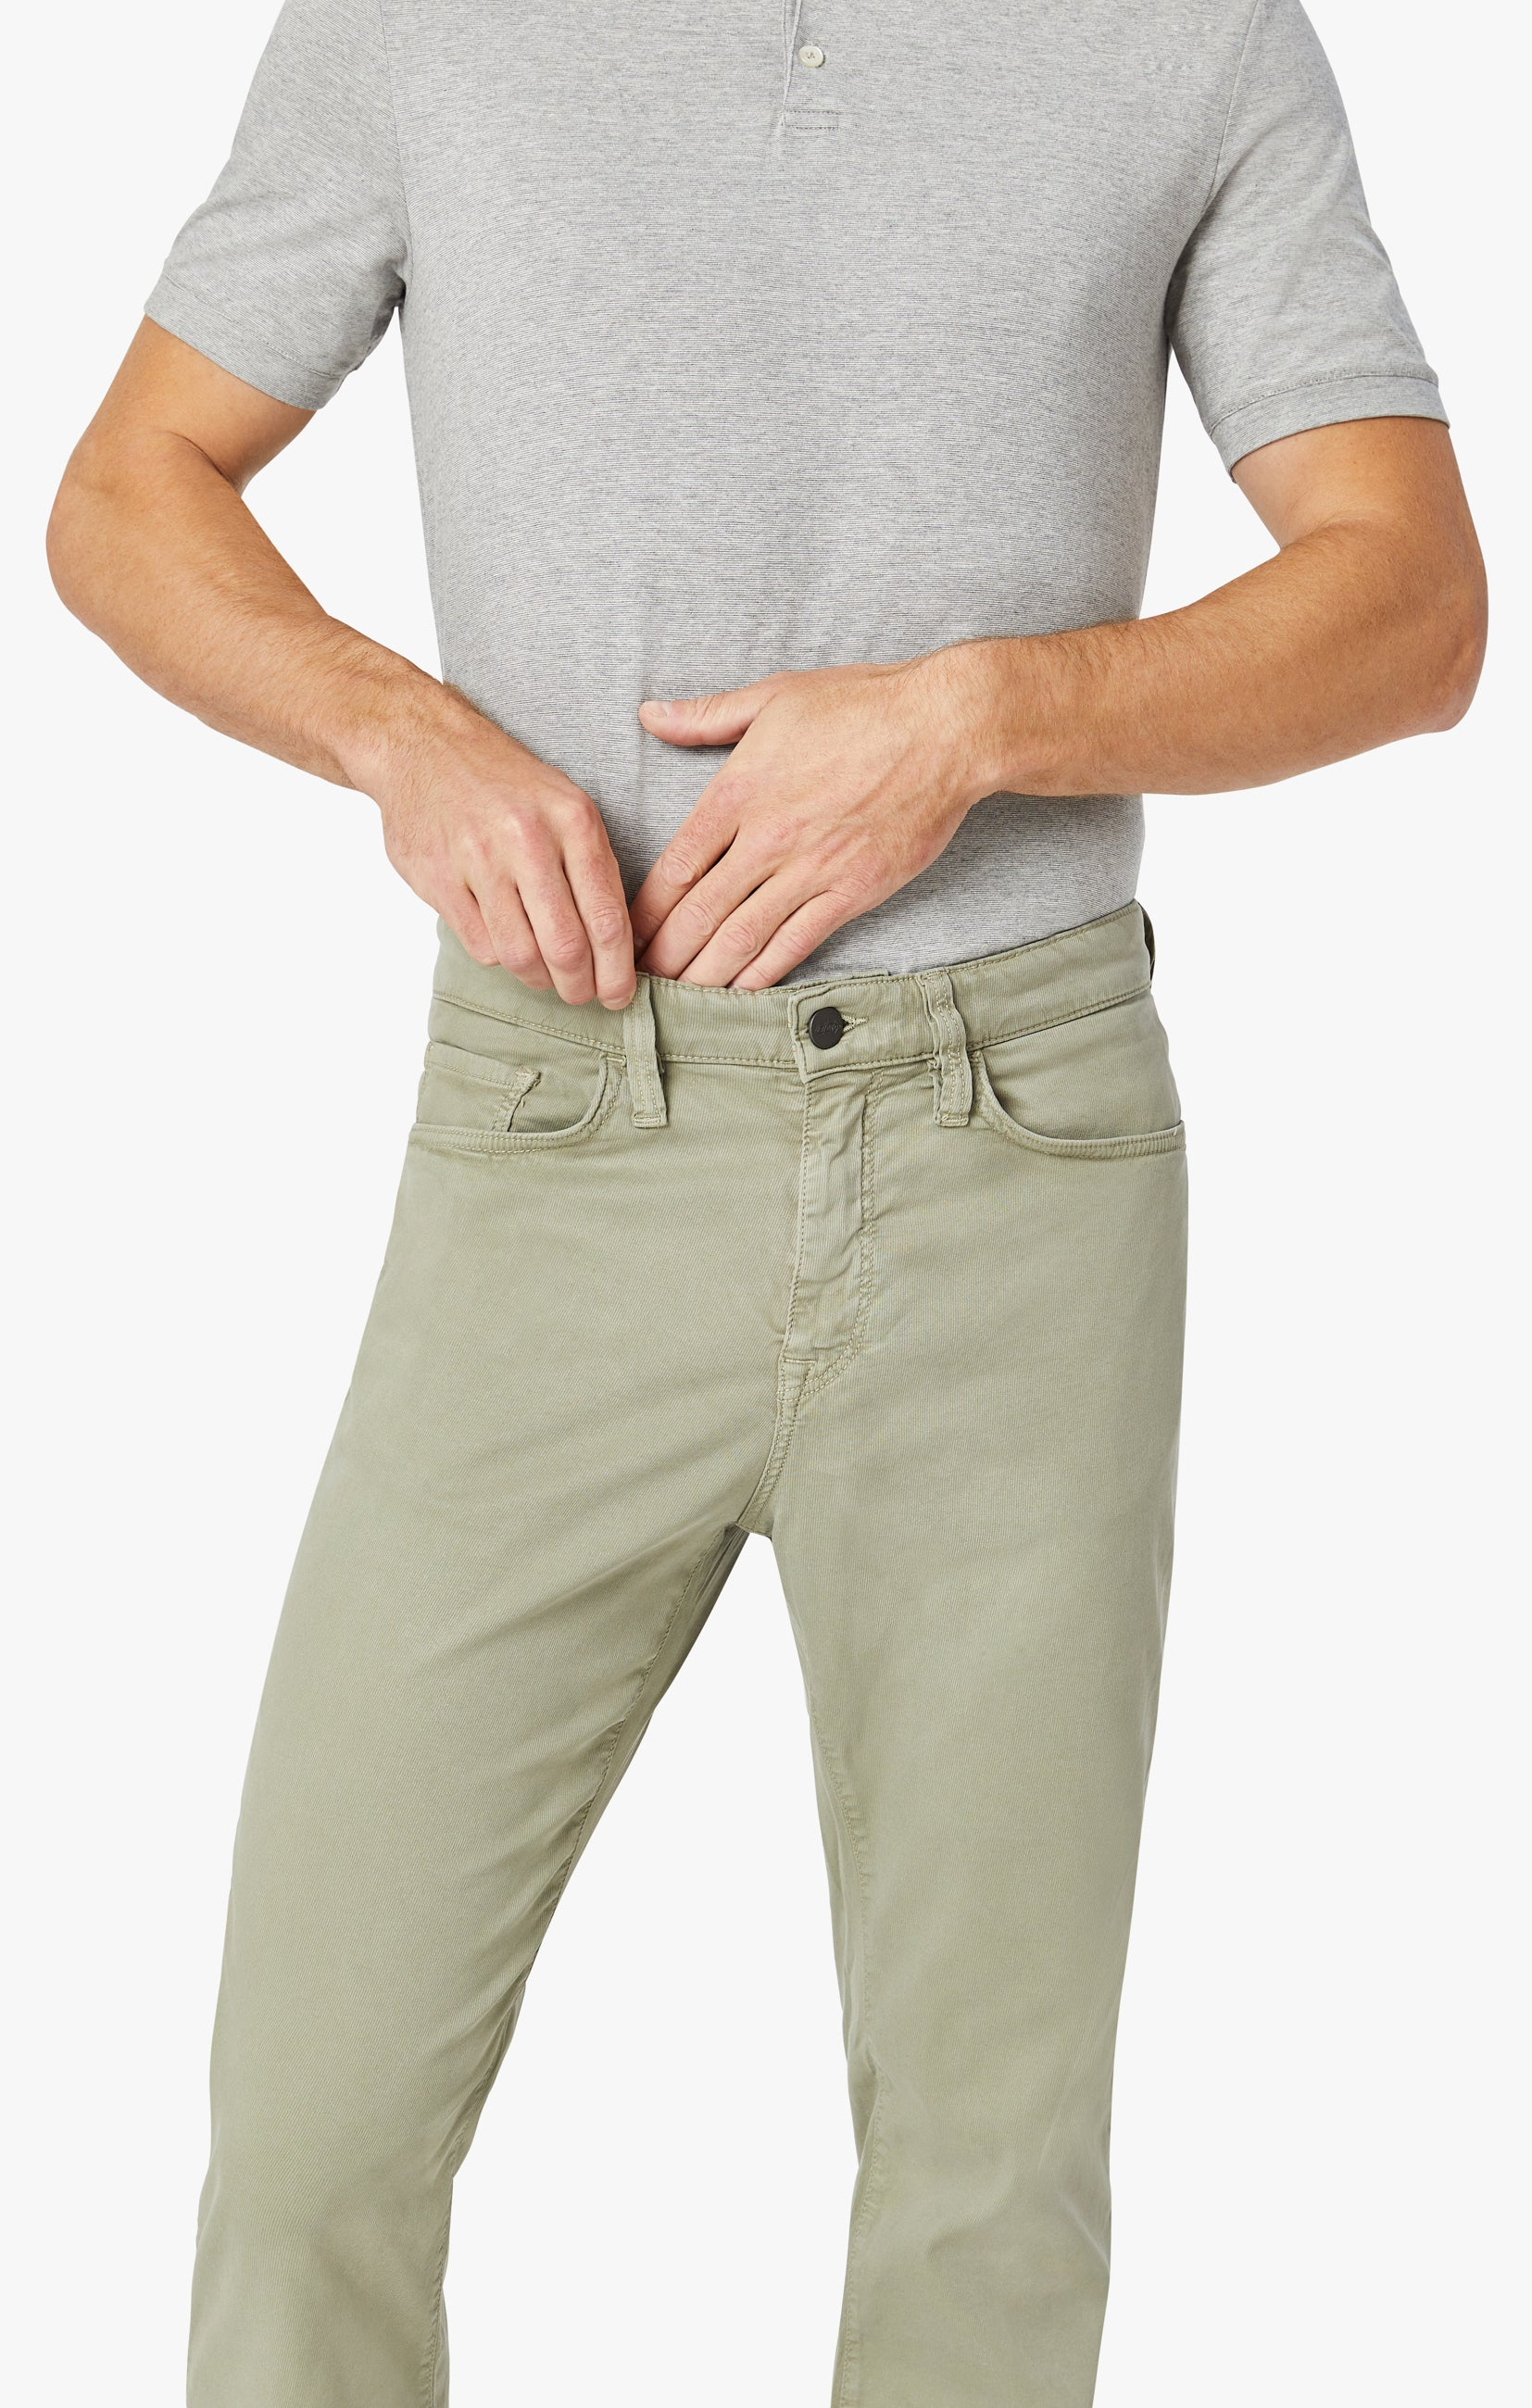 Charisma Relaxed Straight Pants In Sage Soft Touch Image 9